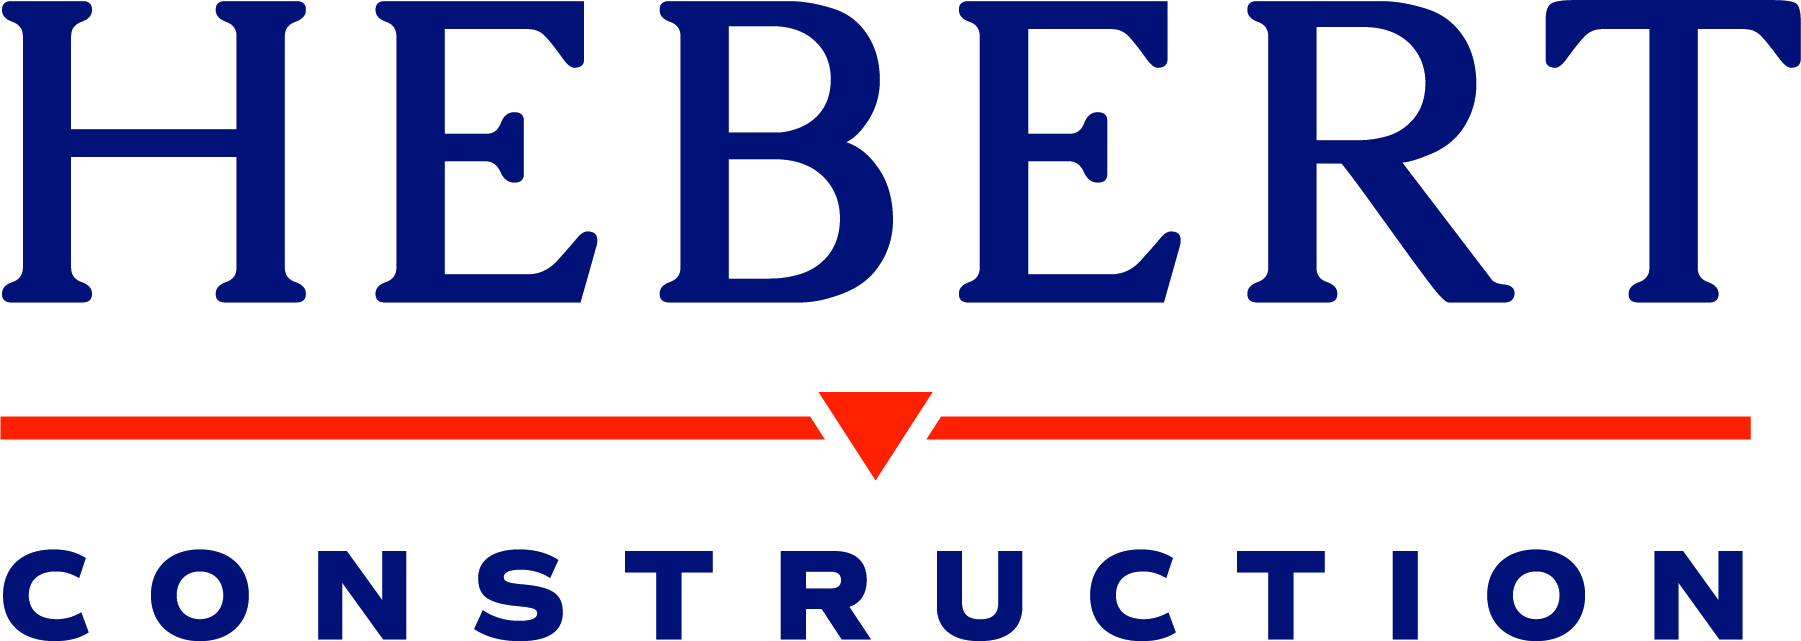 Hebert Construction